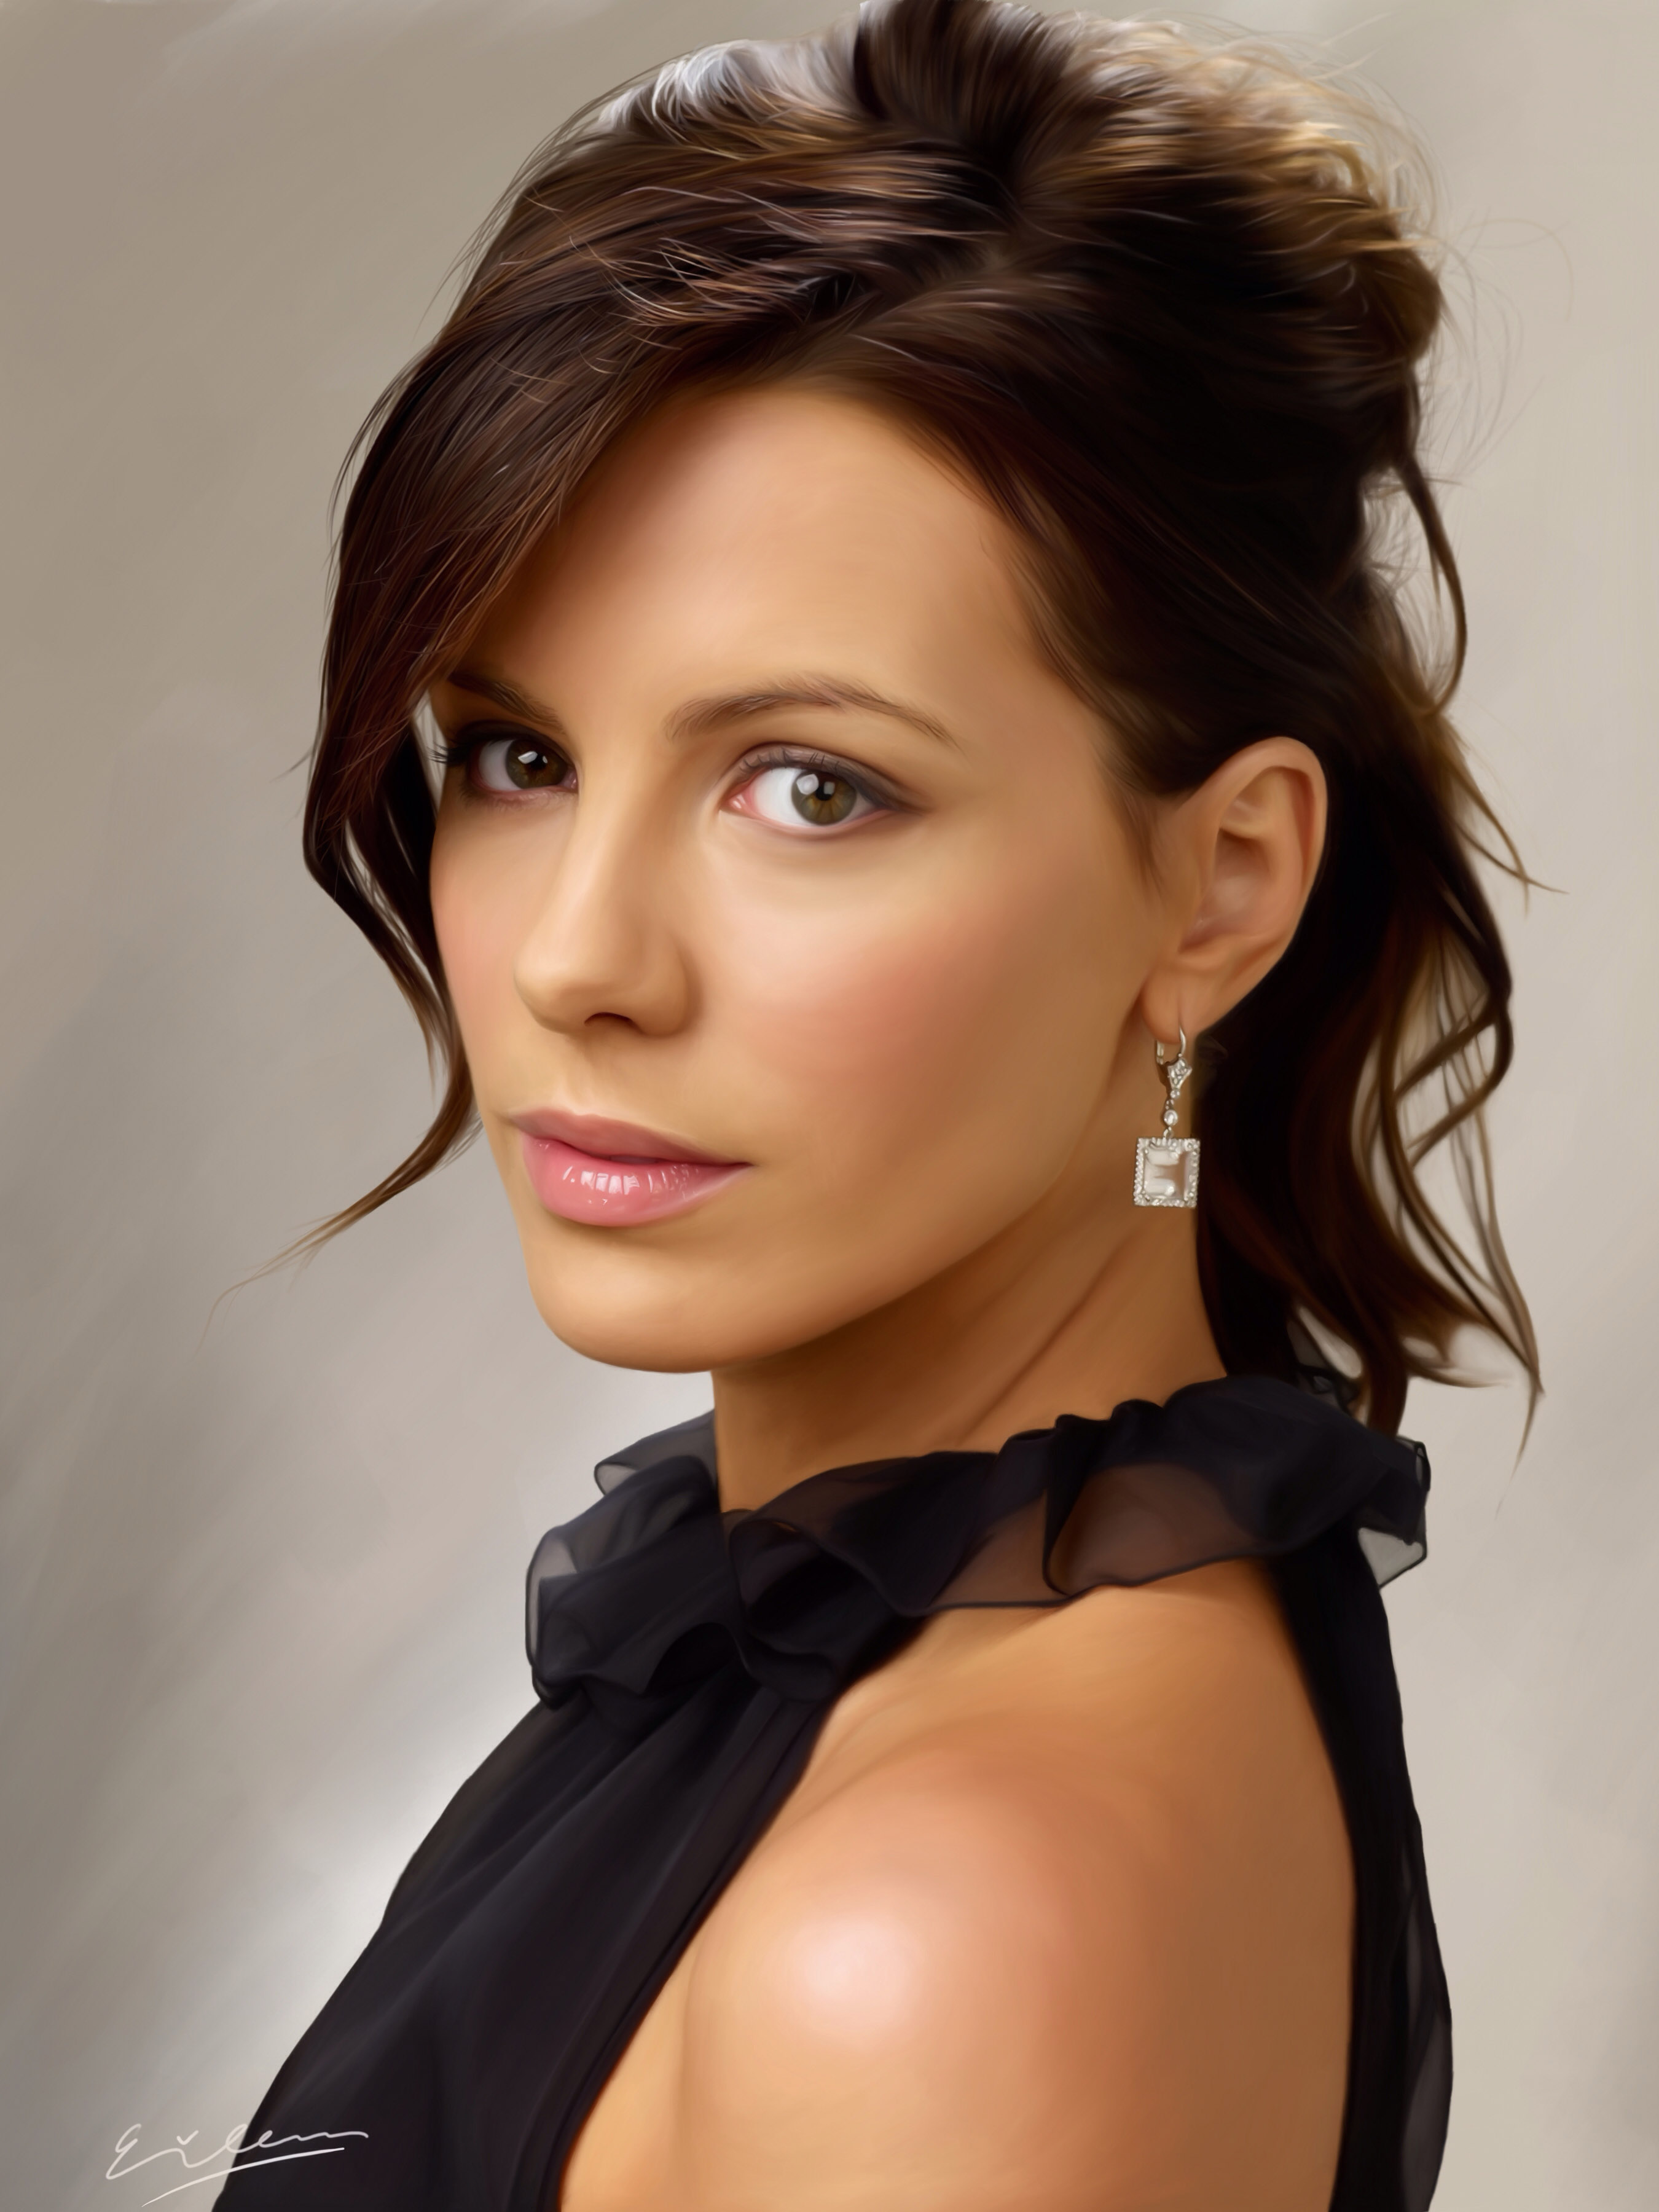 Airbrushed and Idealized Young Kate Beckinsale as LADY LIBERTY - Magic Painting by Eileen Irma - Click here to visit my Public Facebook Post in WOMEN'S RIGHTS NEWS